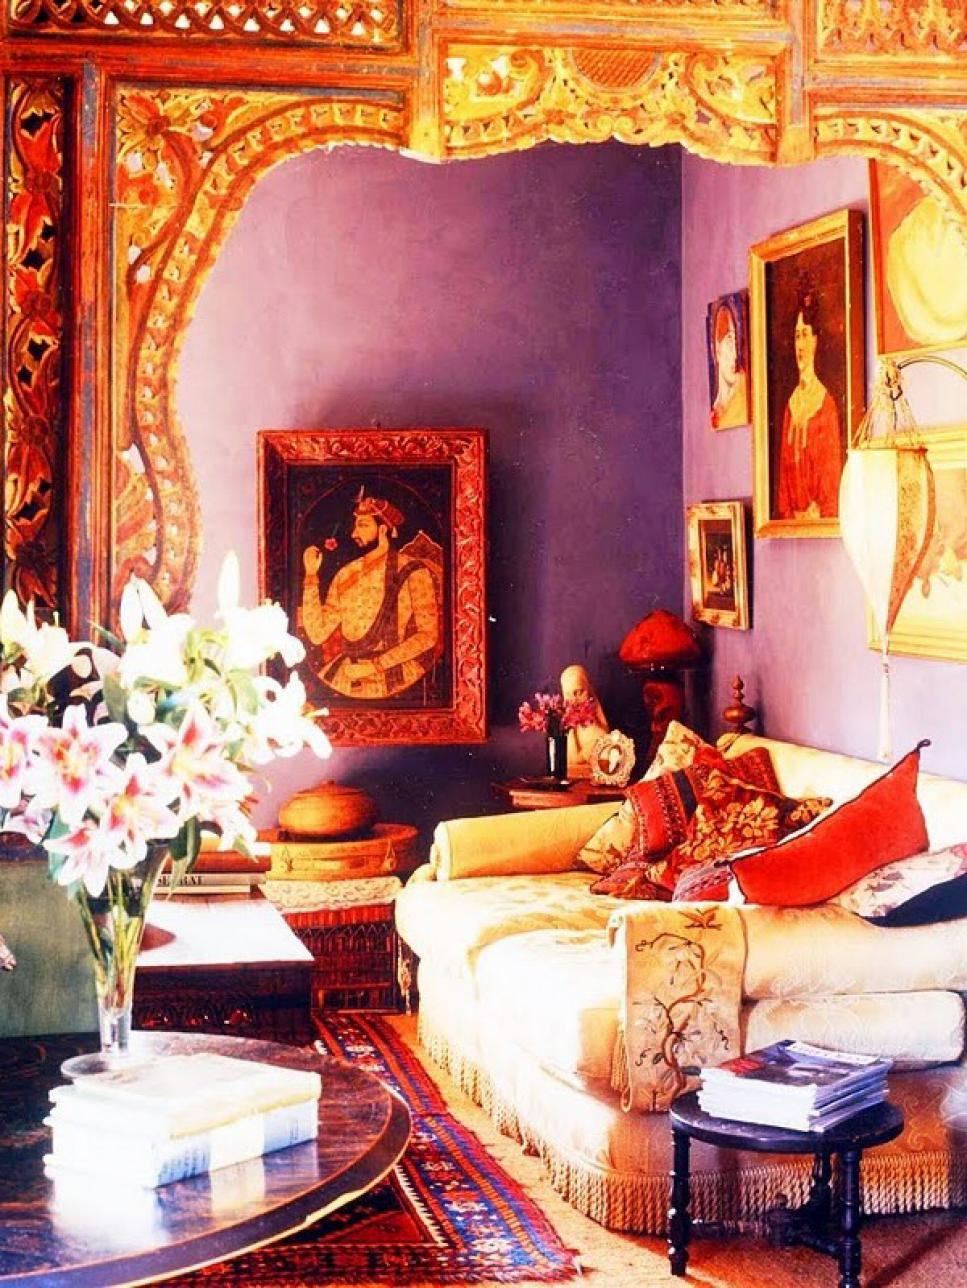 12 spaces inspired by india hgtv - Home Decor Ideas India